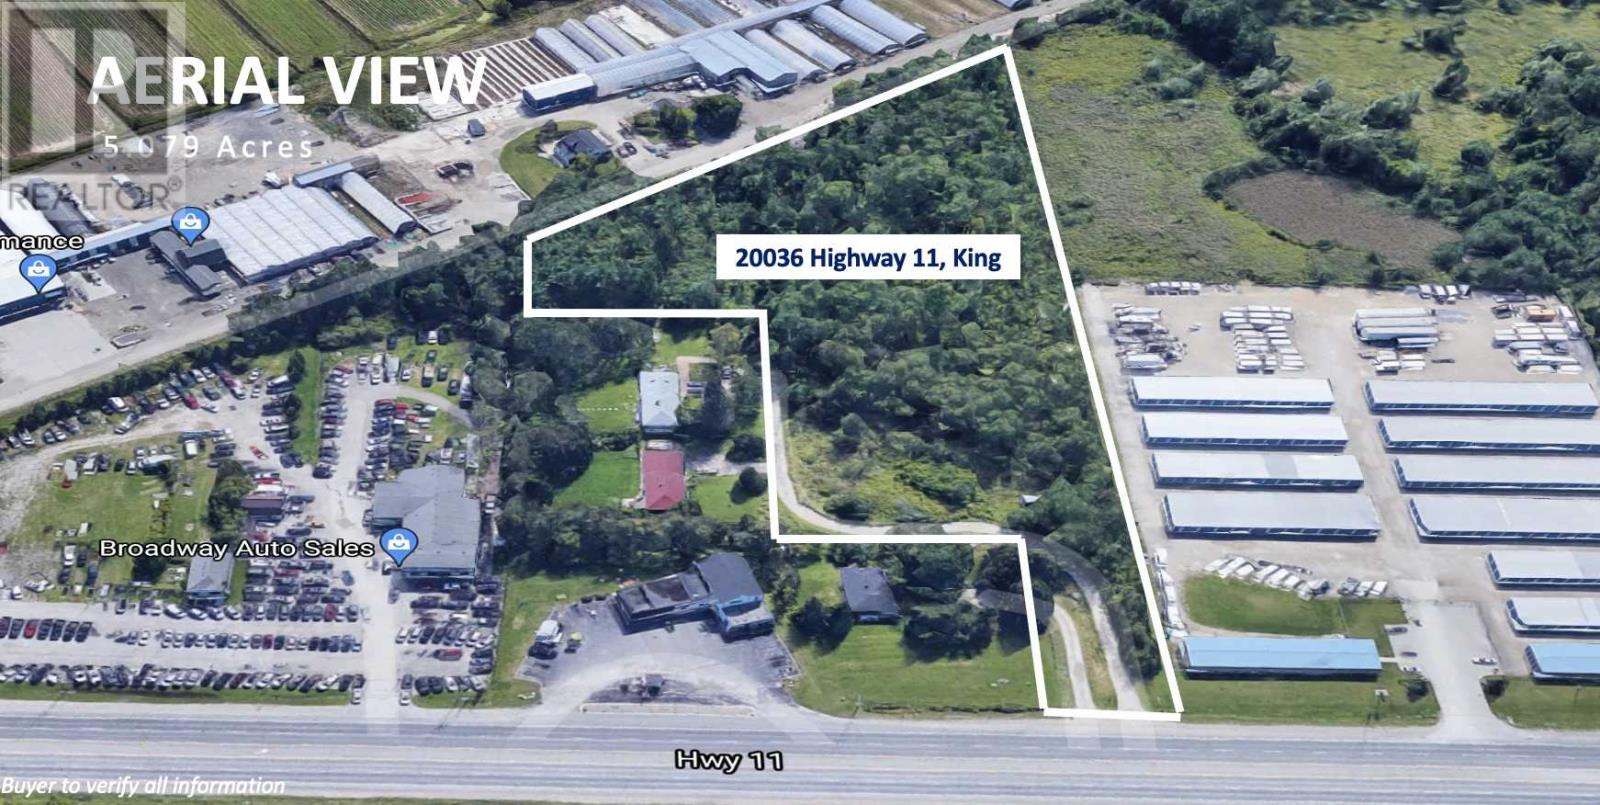 residential property for For sale at King, Ontario